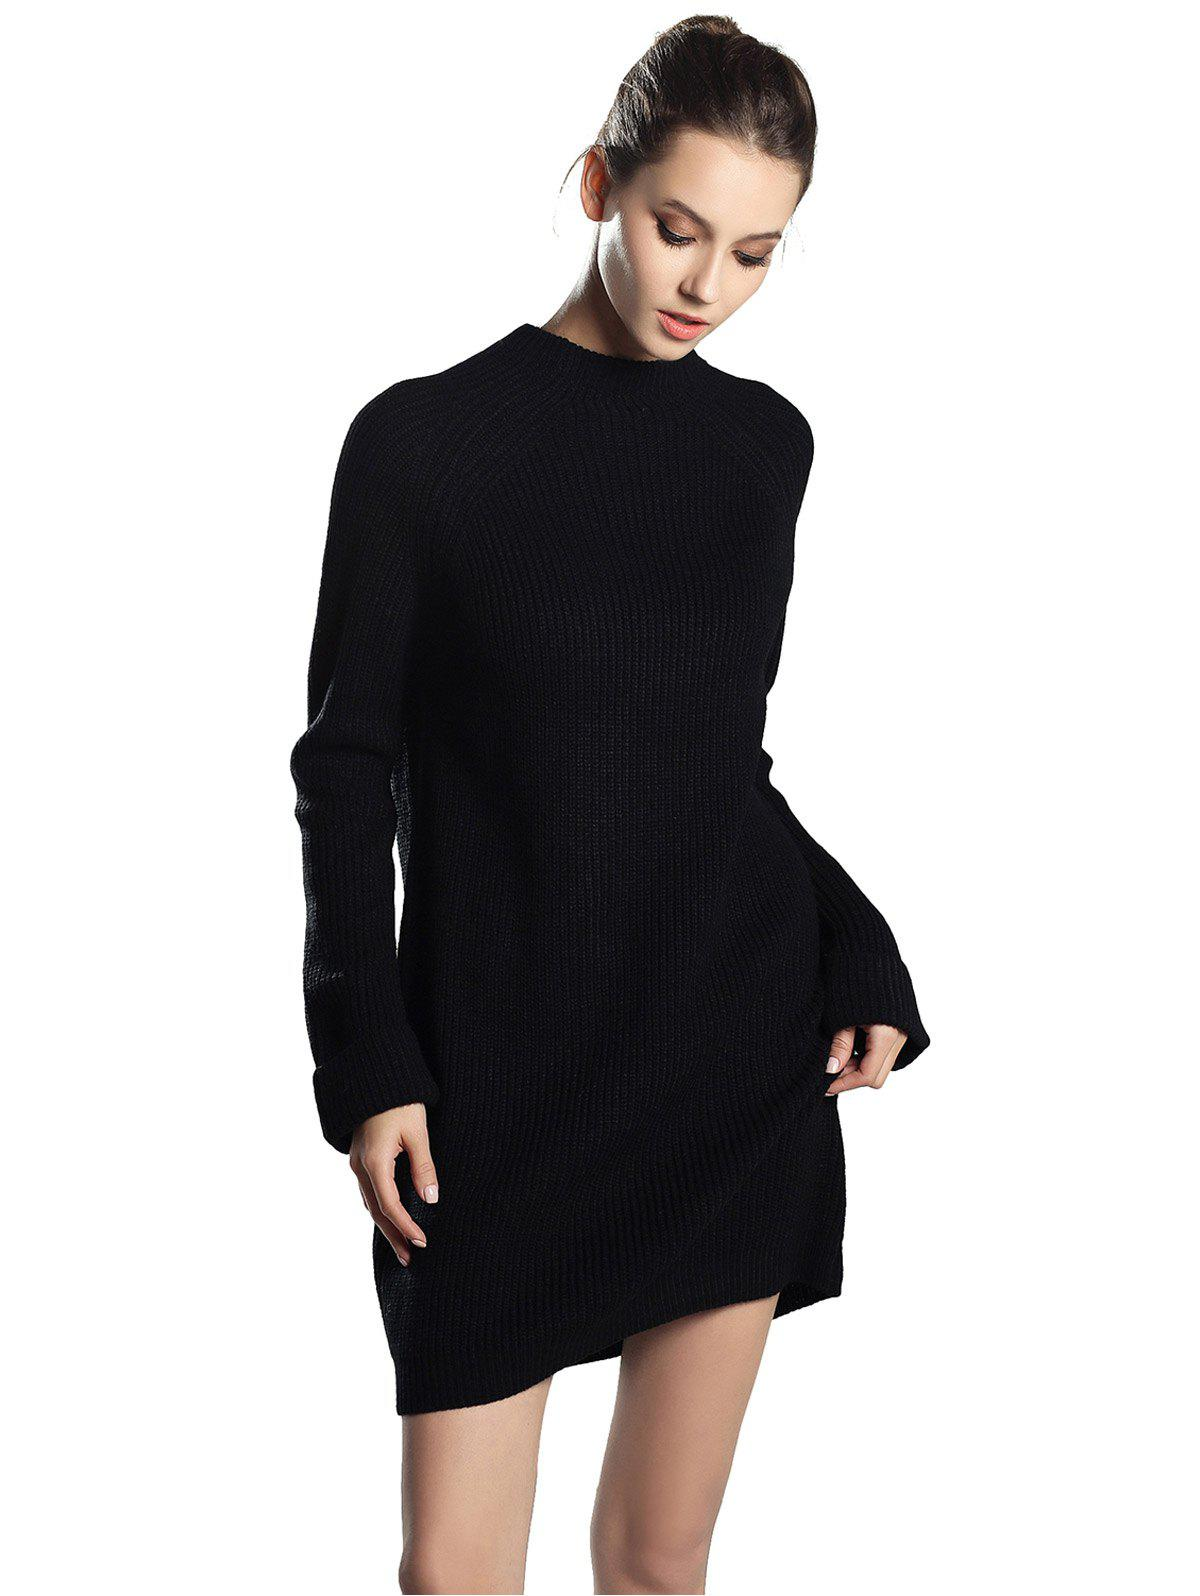 Unique High Neck Raglan sleeve knit sweater Mini dress